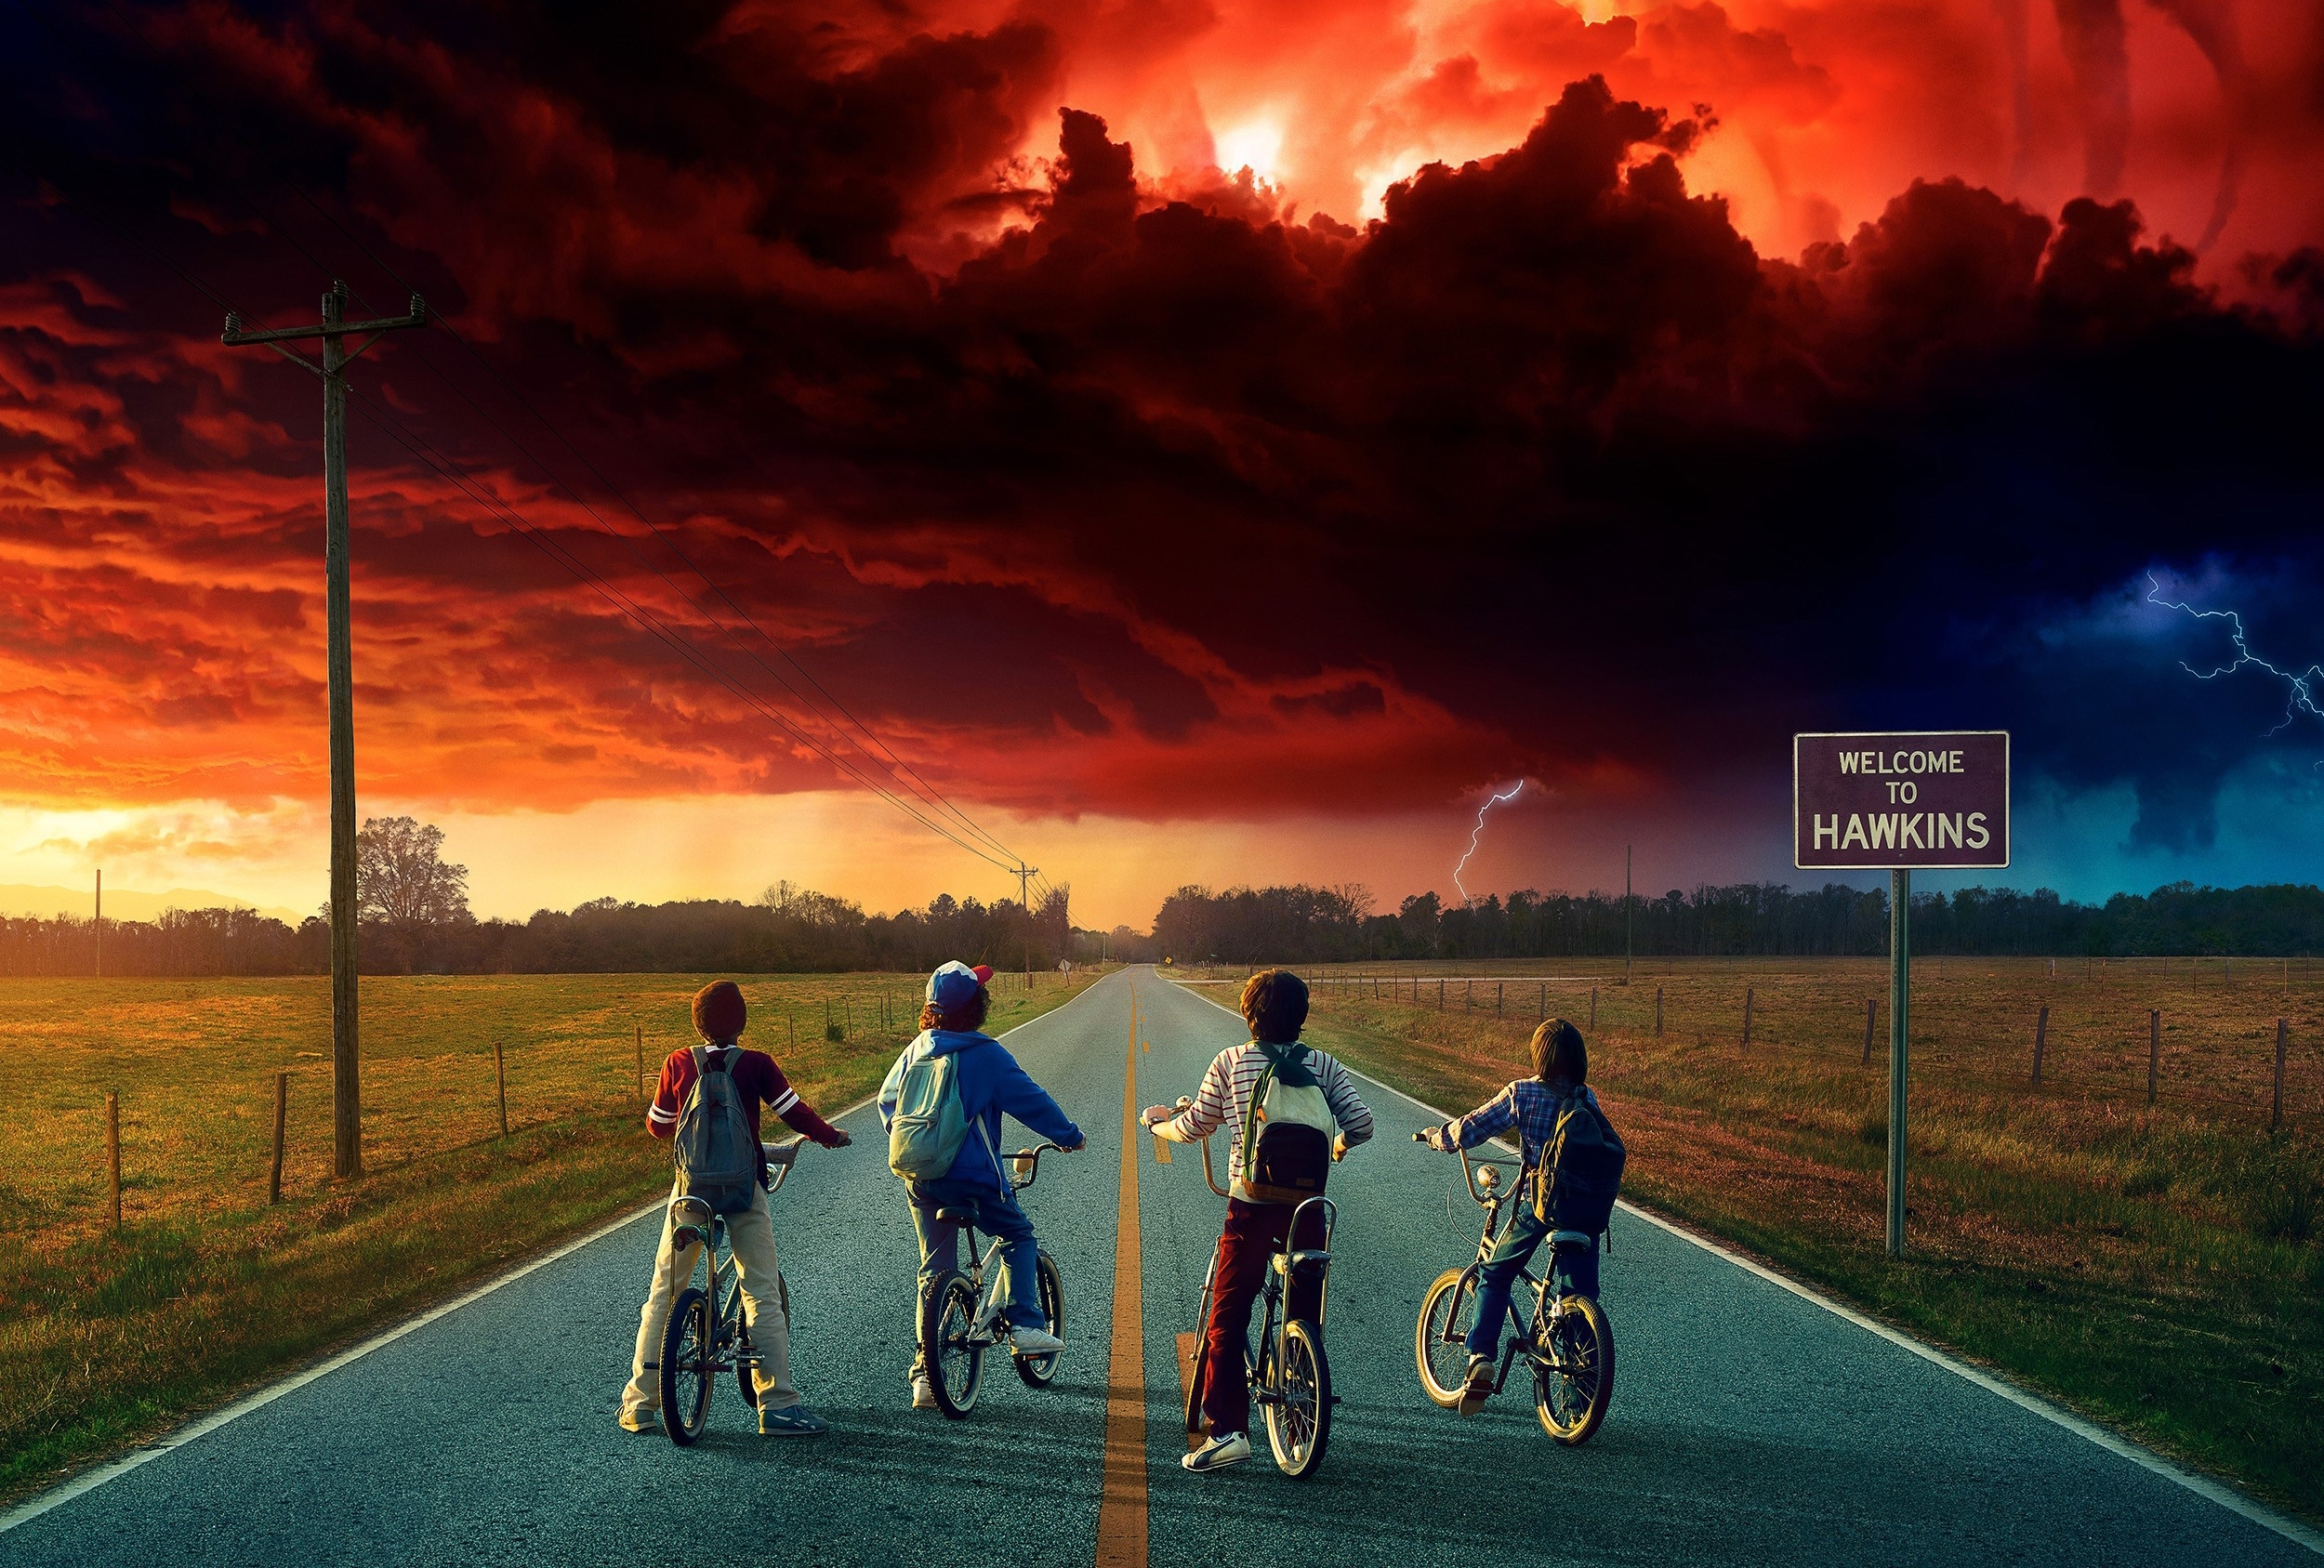 76 stranger things hd wallpapers | background images - wallpaper abyss